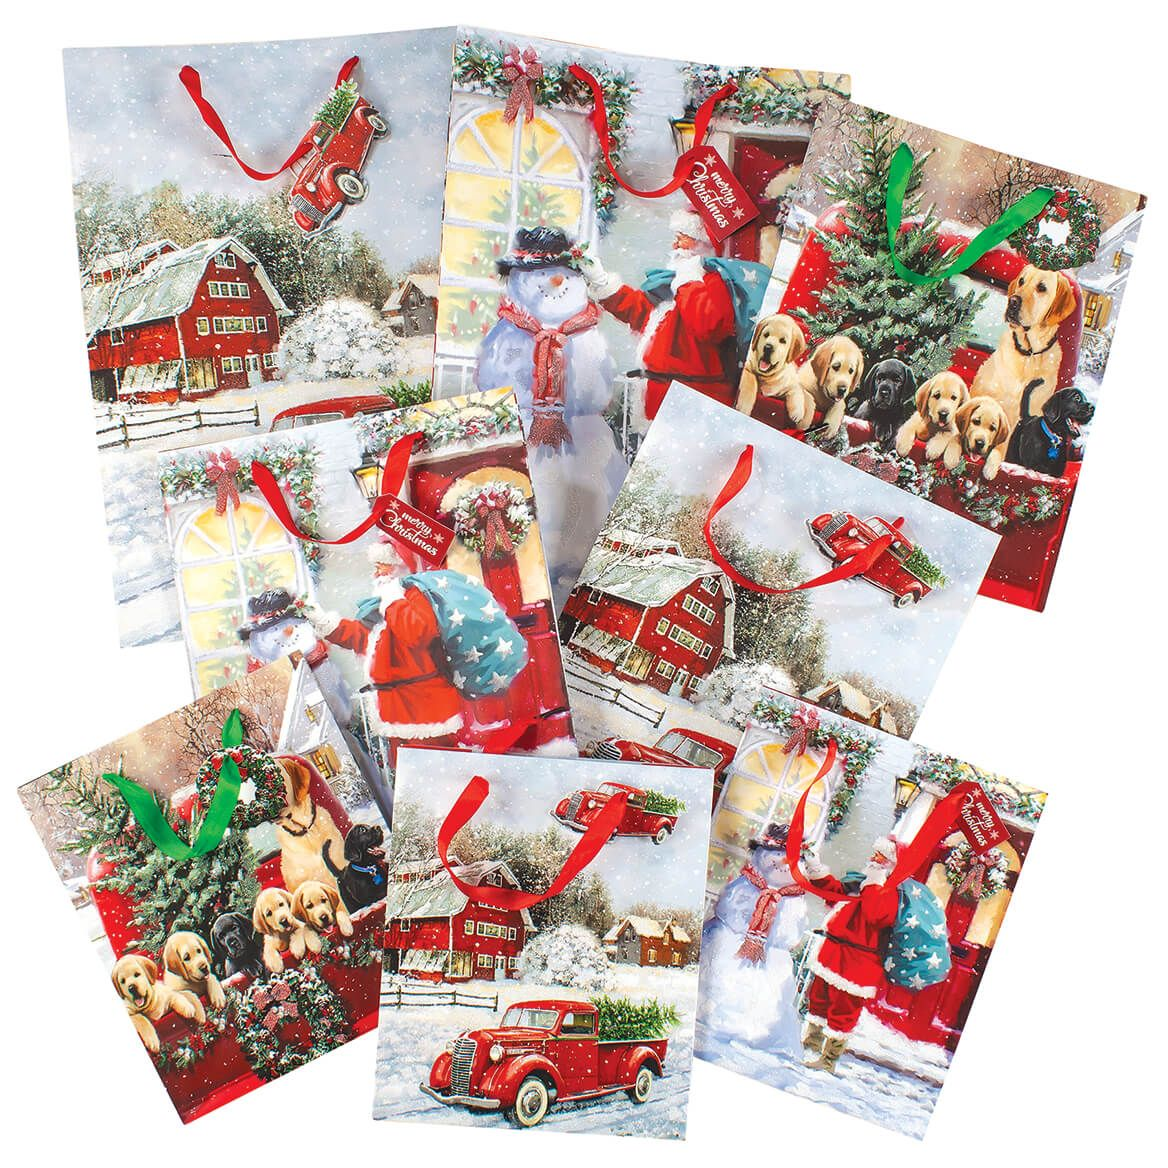 Home for the Holidays Gift Bag set of 8-368348